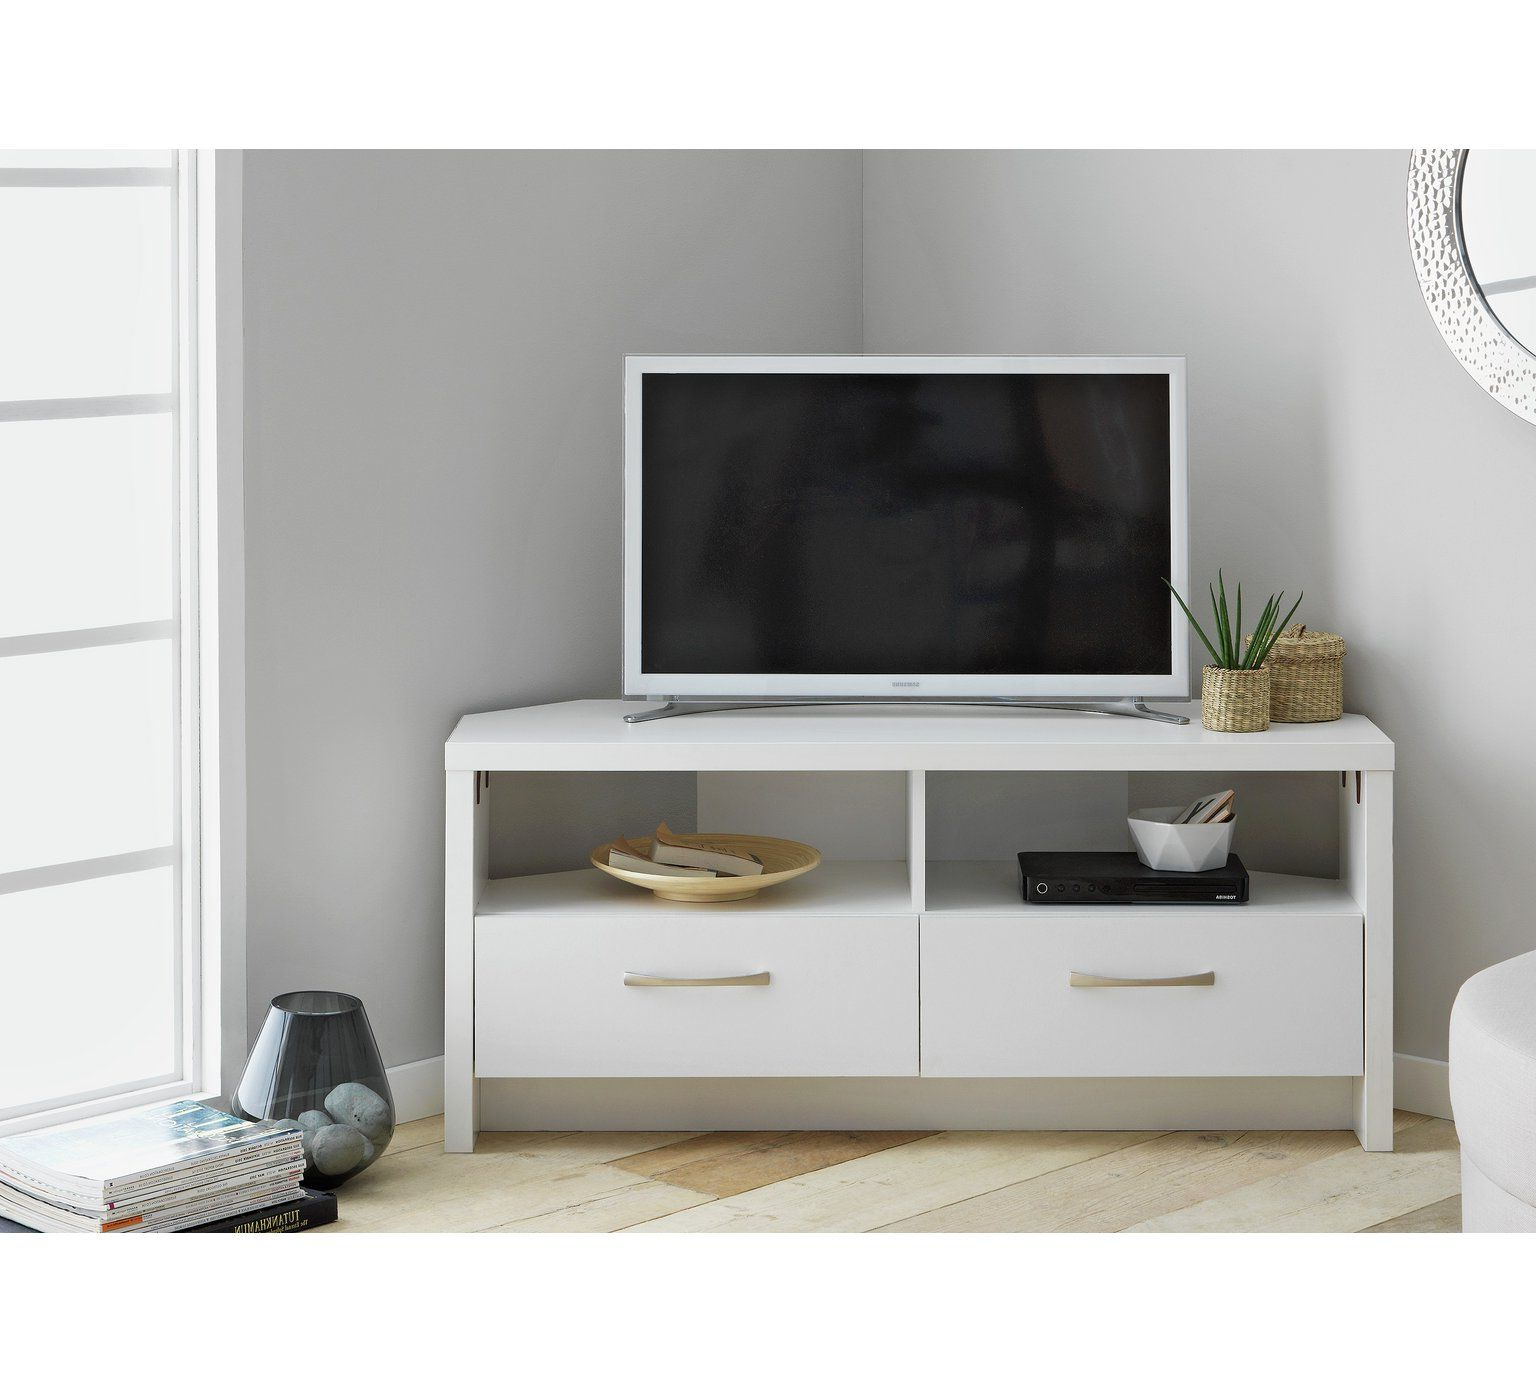 Buy Collection Venice 2 Drawer Large Corner Tv Unit – White At Argos With 2017 Large Corner Tv Cabinets (View 3 of 20)